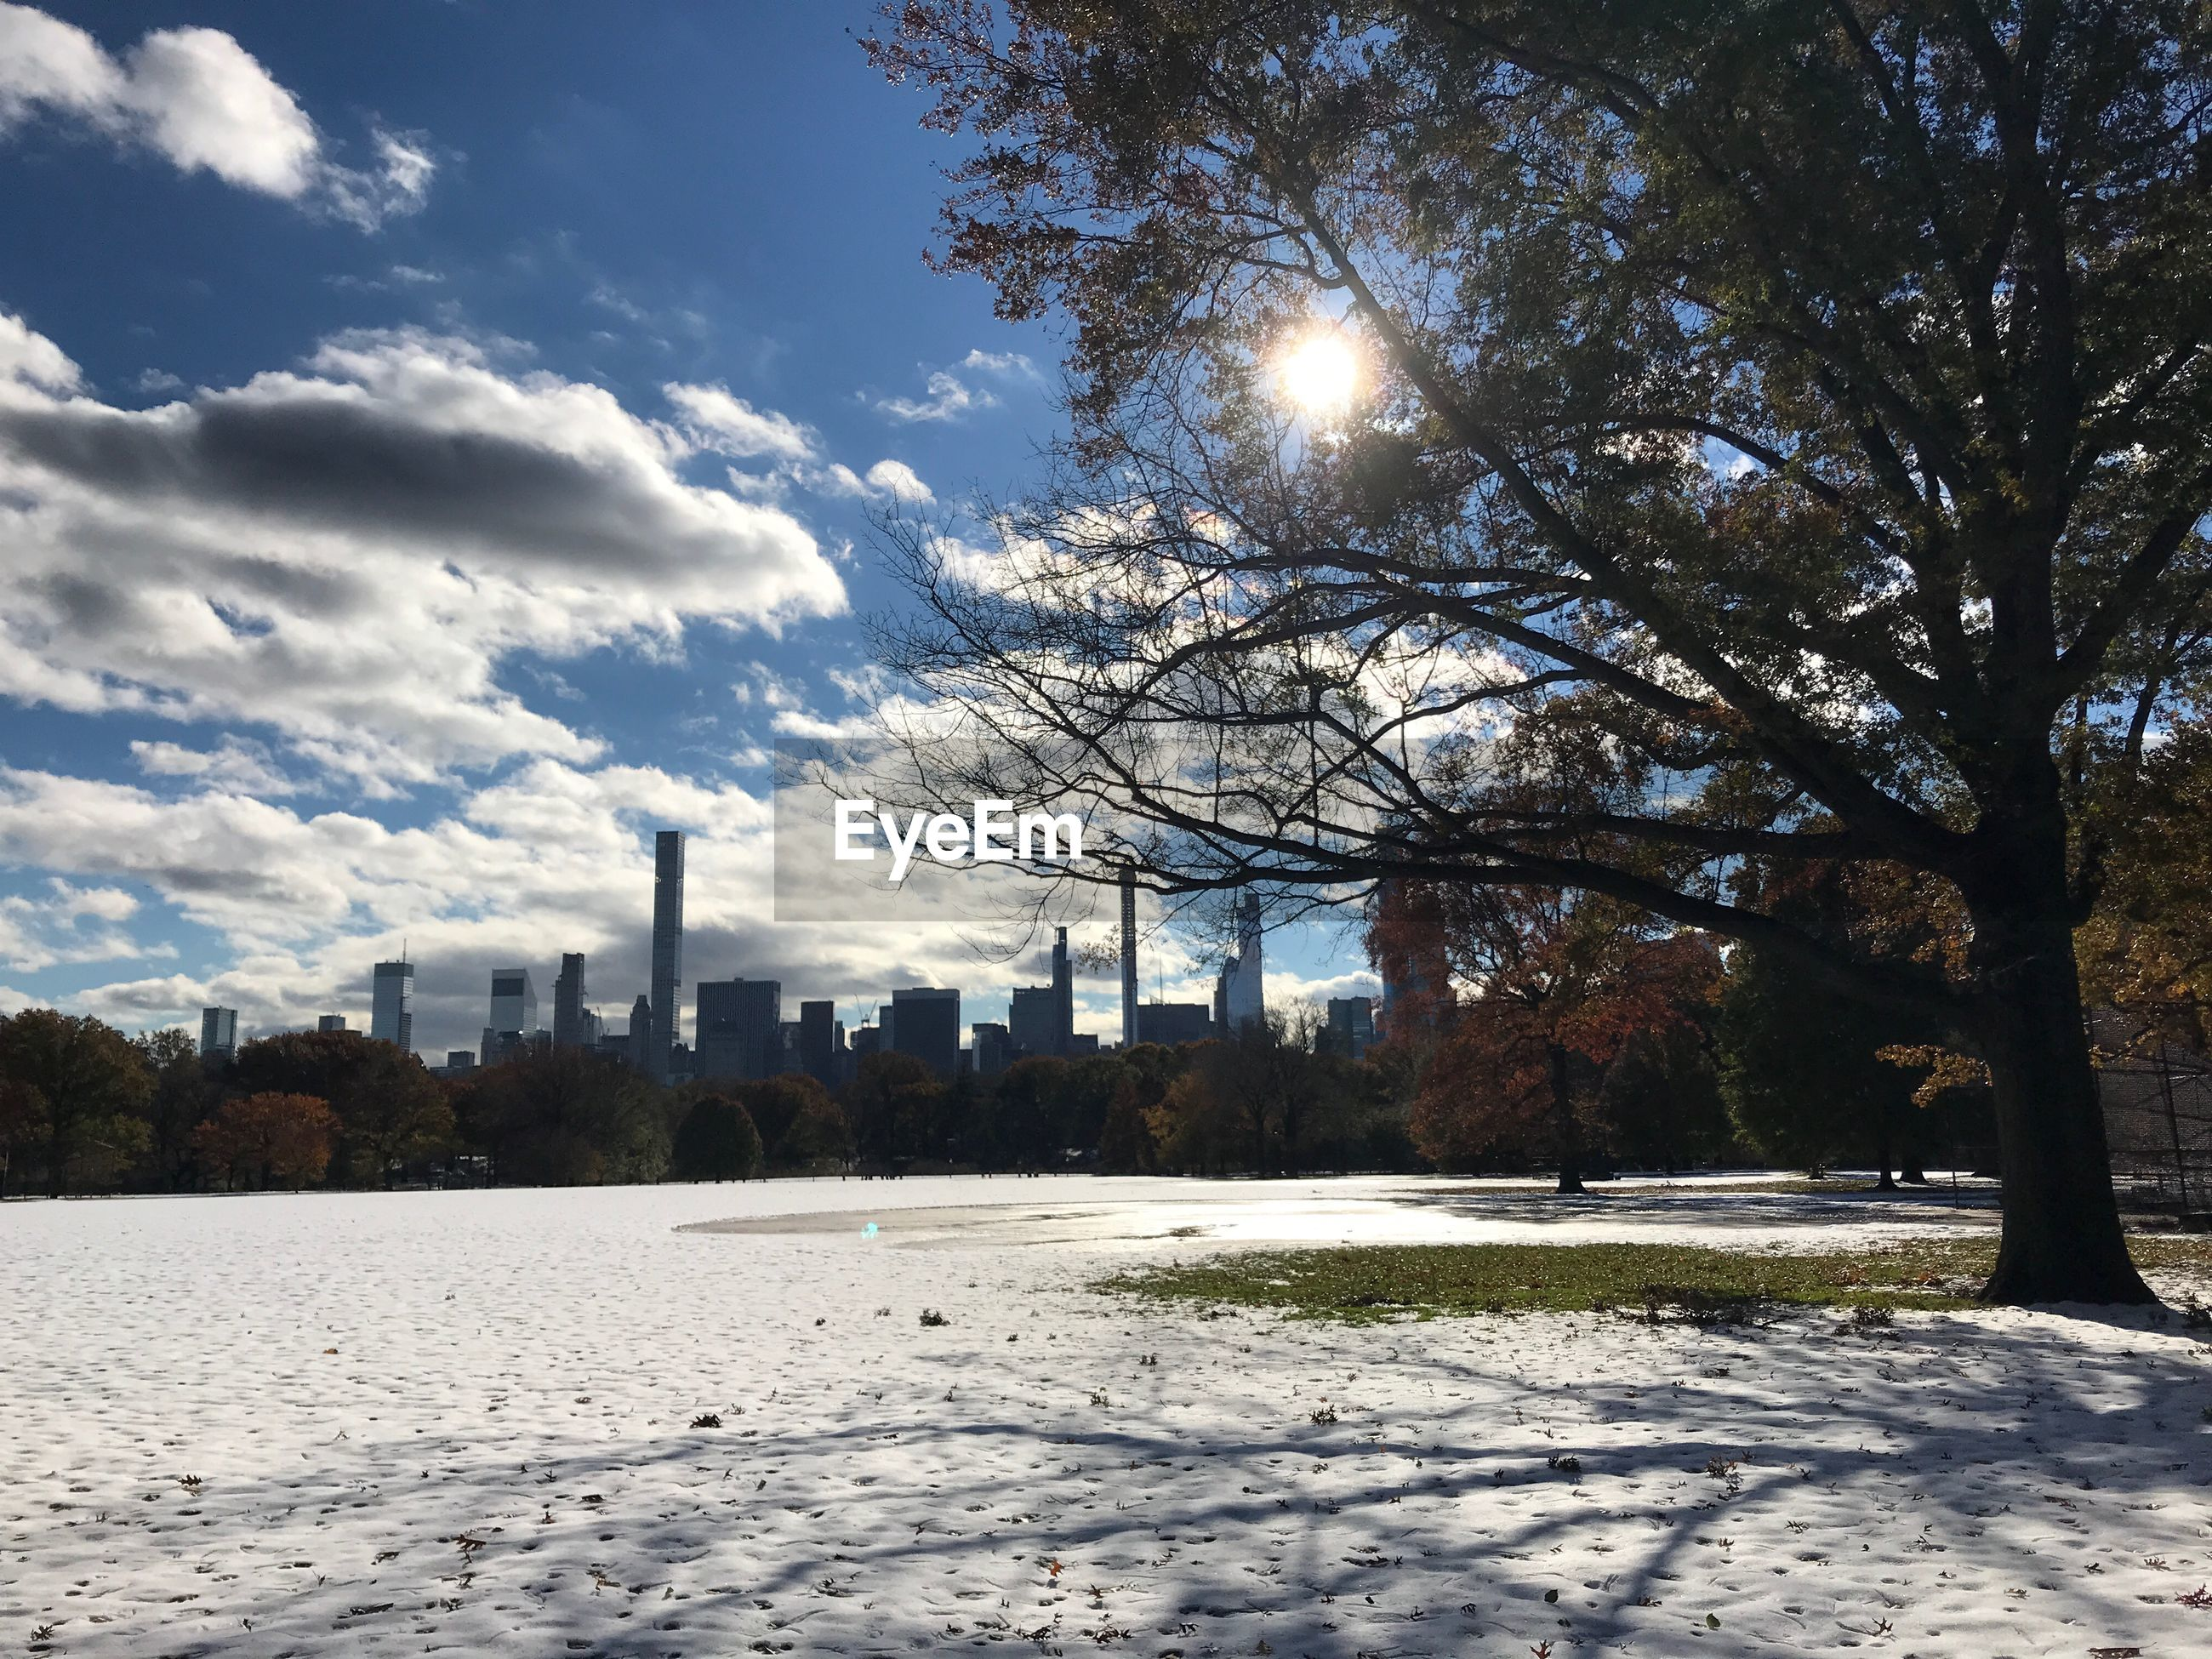 Trees and buildings in city during winter